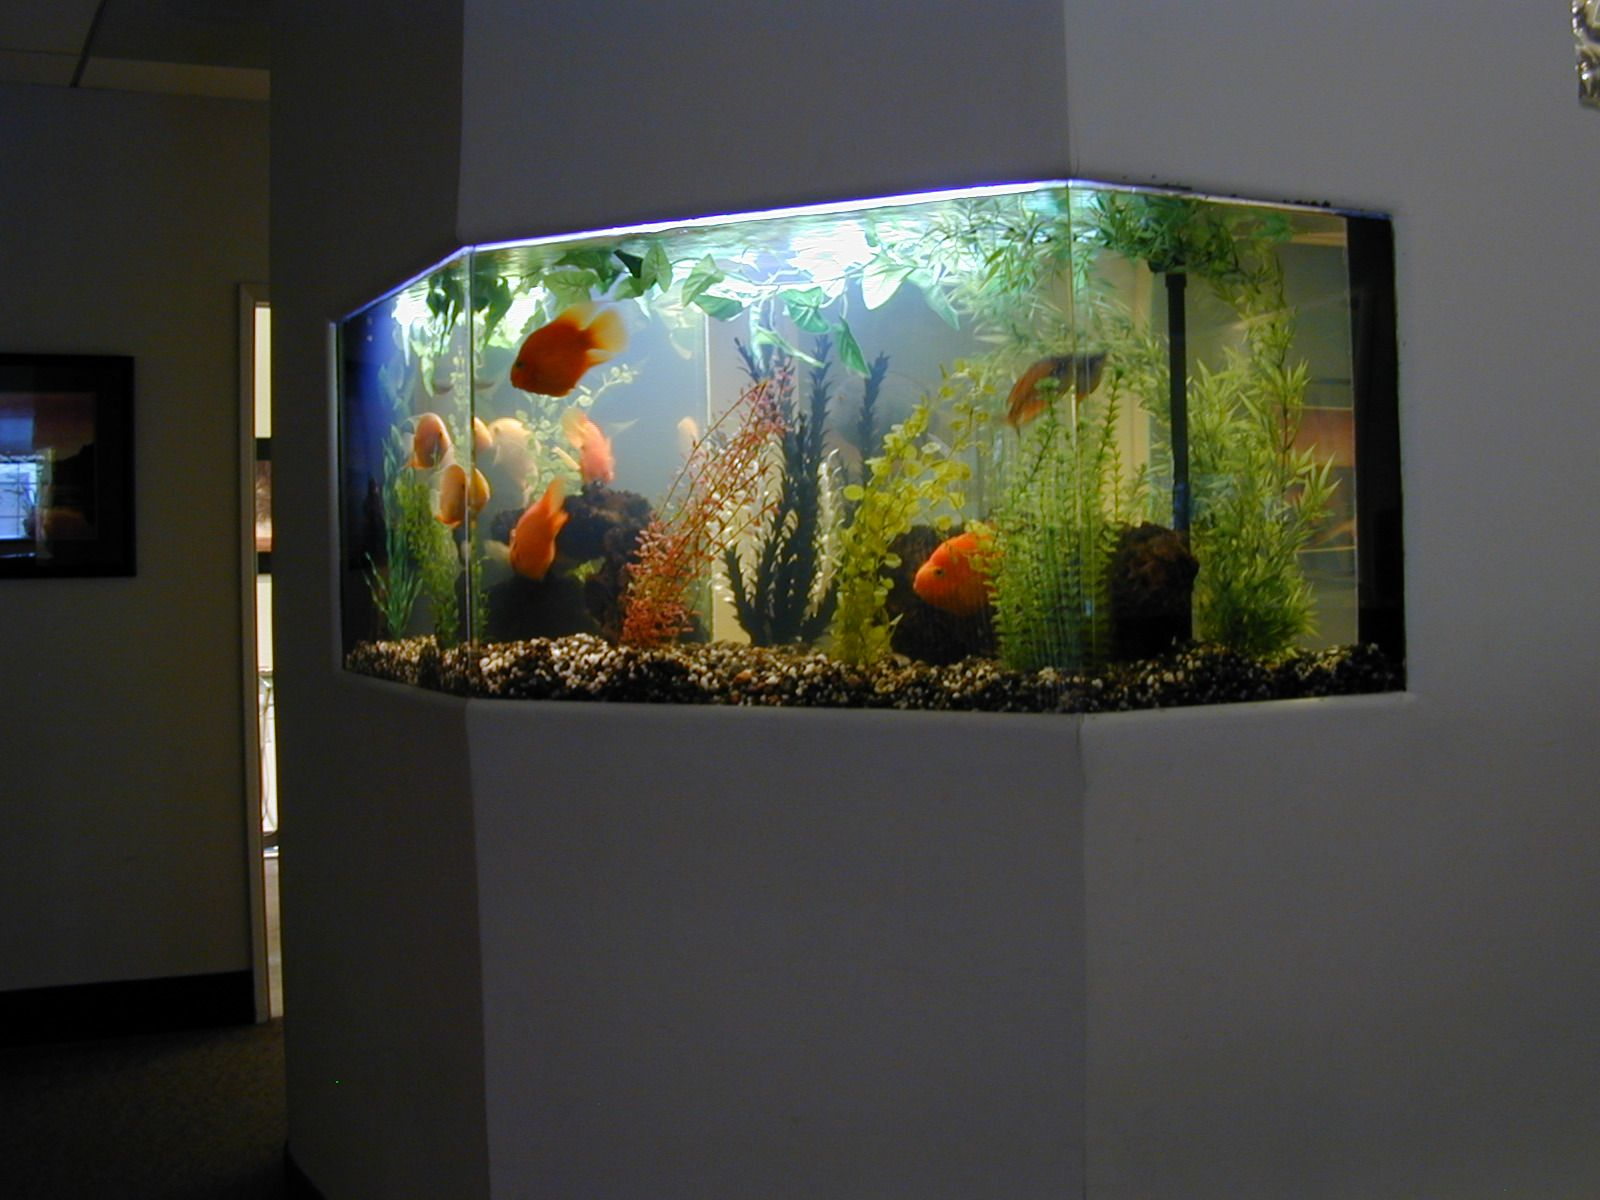 Freshwater aquarium fish tank pictures - 35 Unusual Aquariums And Custom Tropical Fish Tanks For Unique Interior Design Fish Tanks